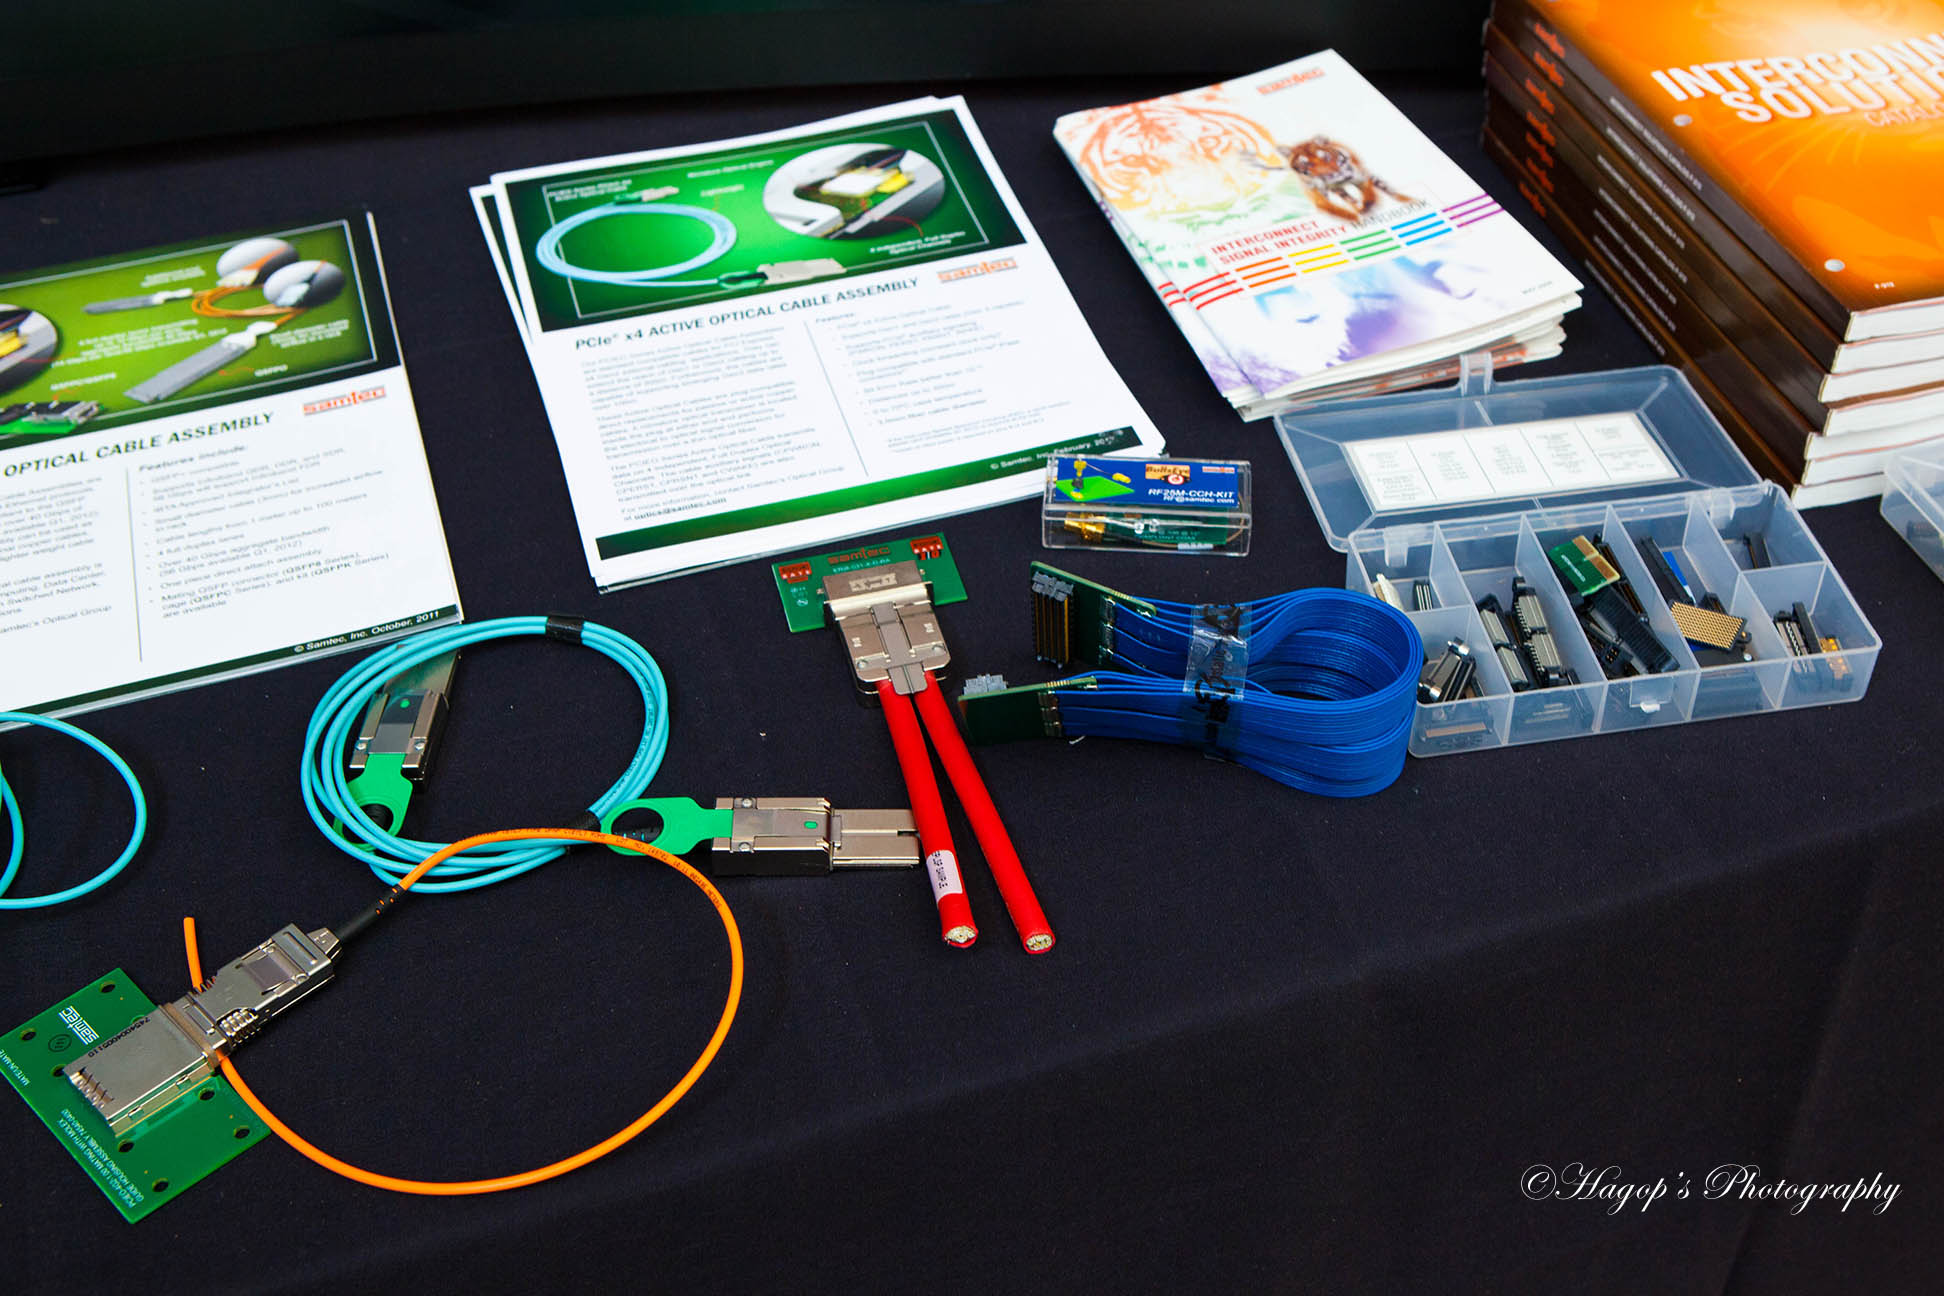 items displayed by vendors sponsoring the conference